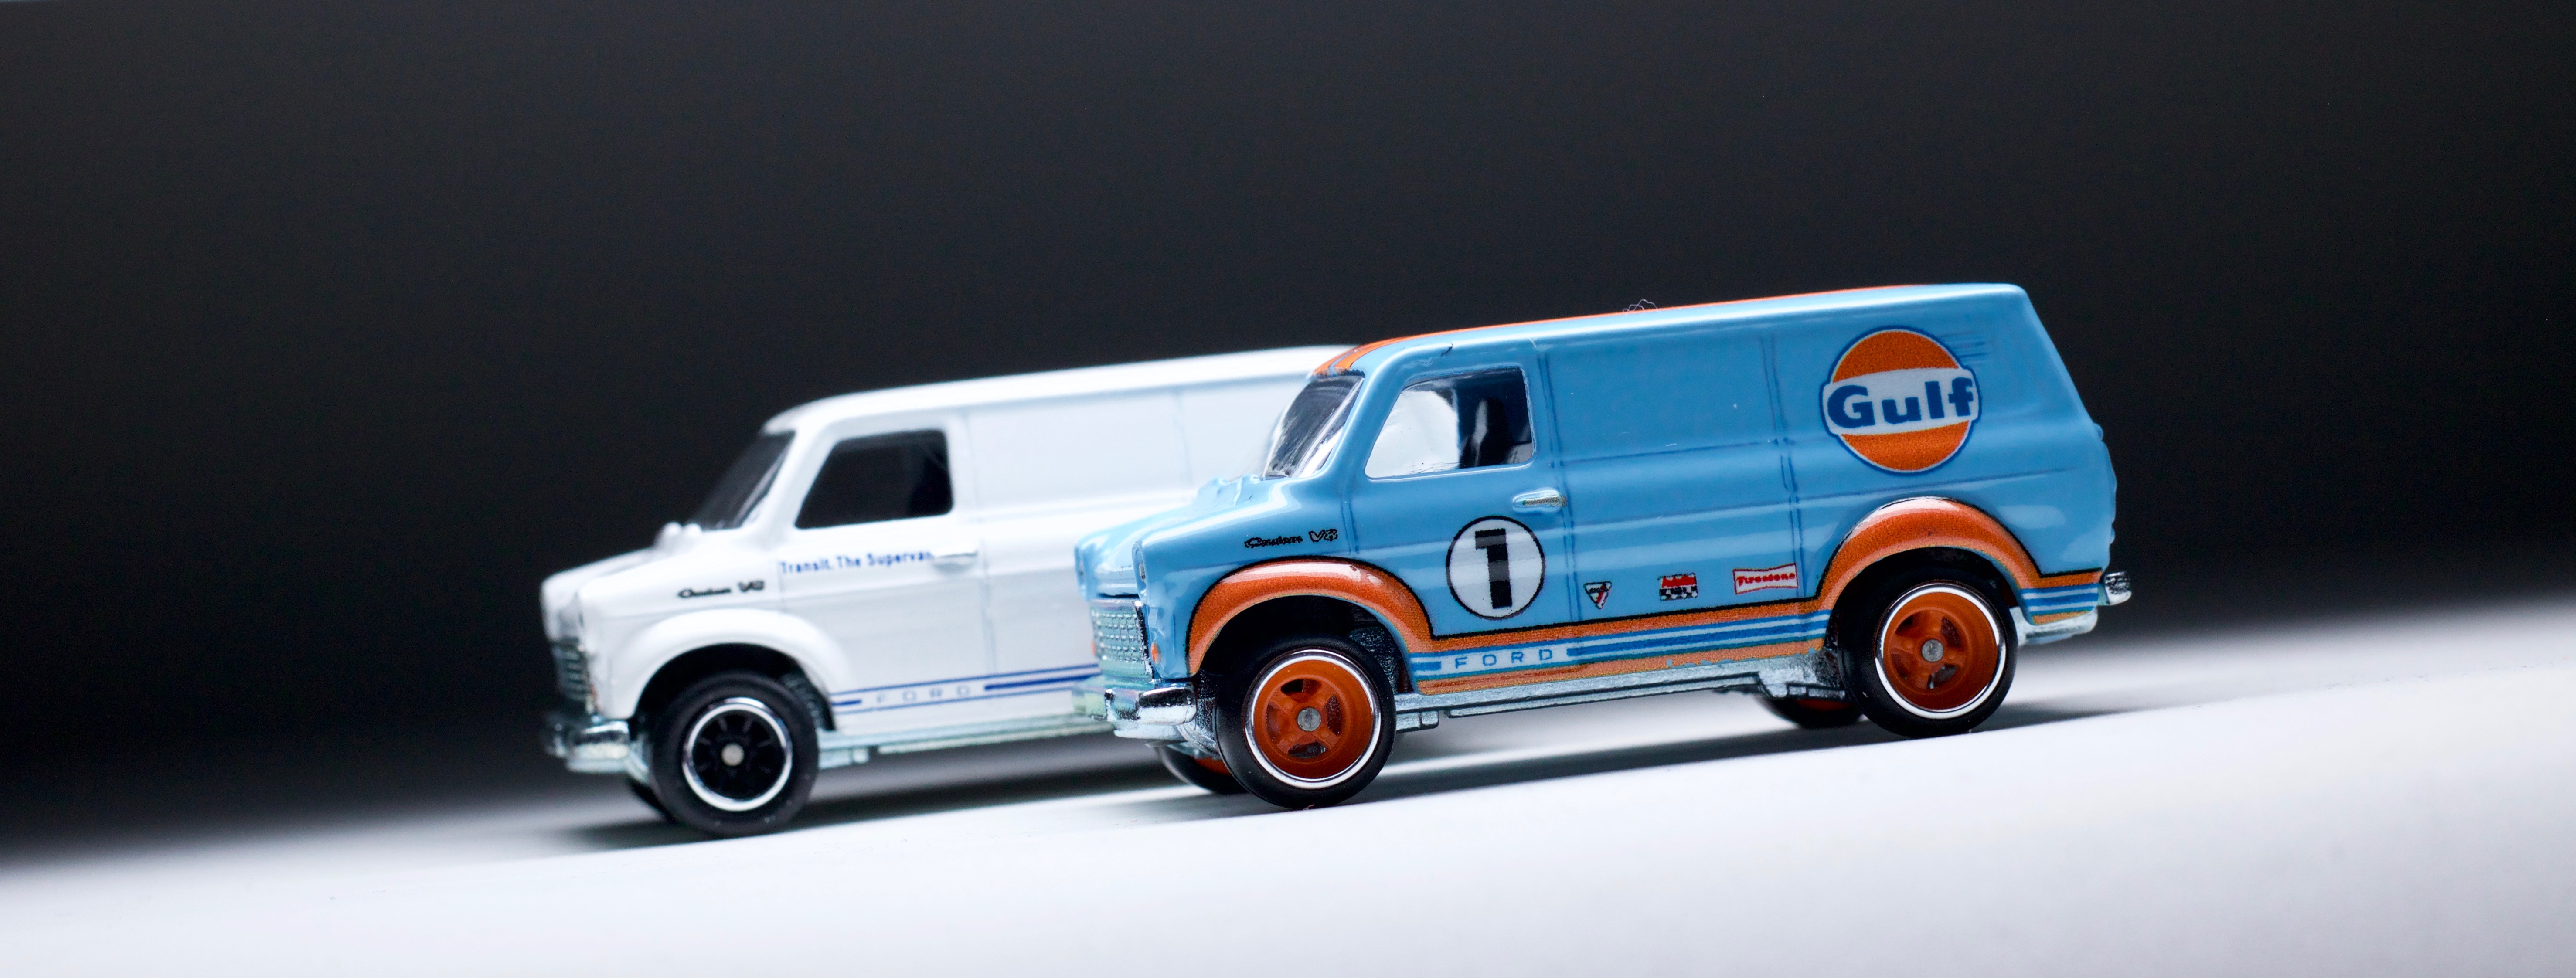 The Ford Transit Supervan Returns To Its Roots In Car Culture Cargo